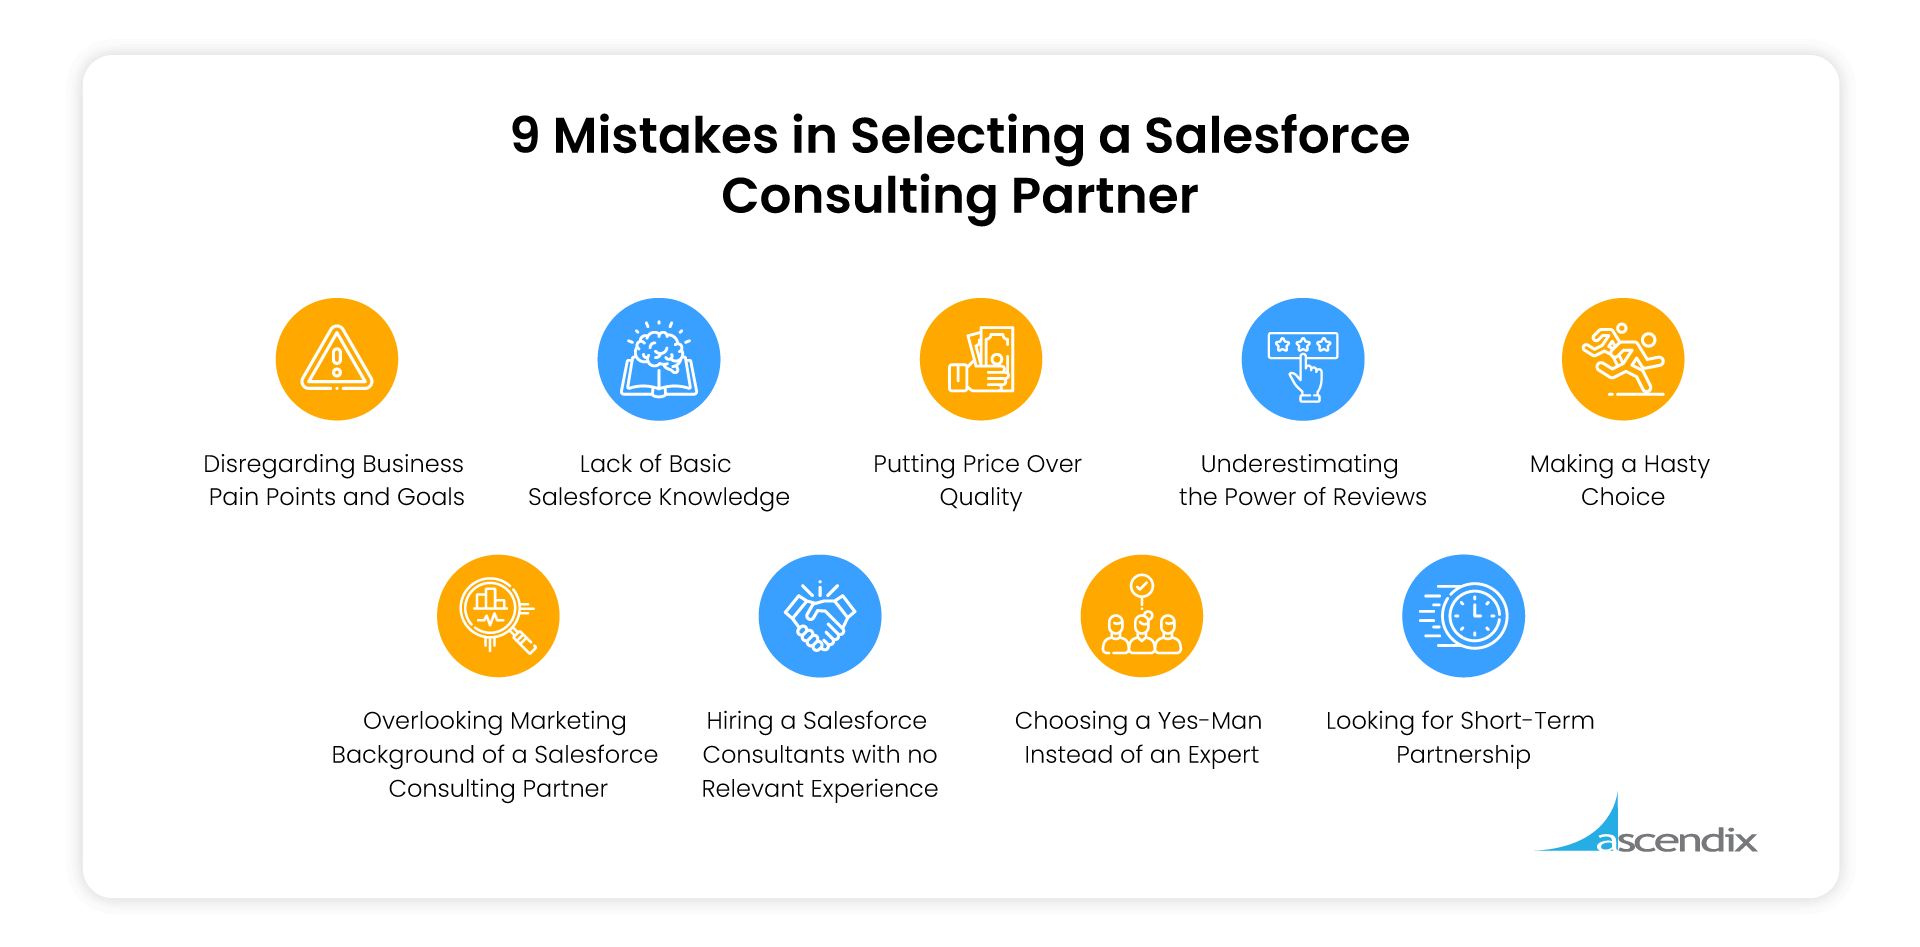 9 Mistakes in Selecting a Salesforce Consulting Partner